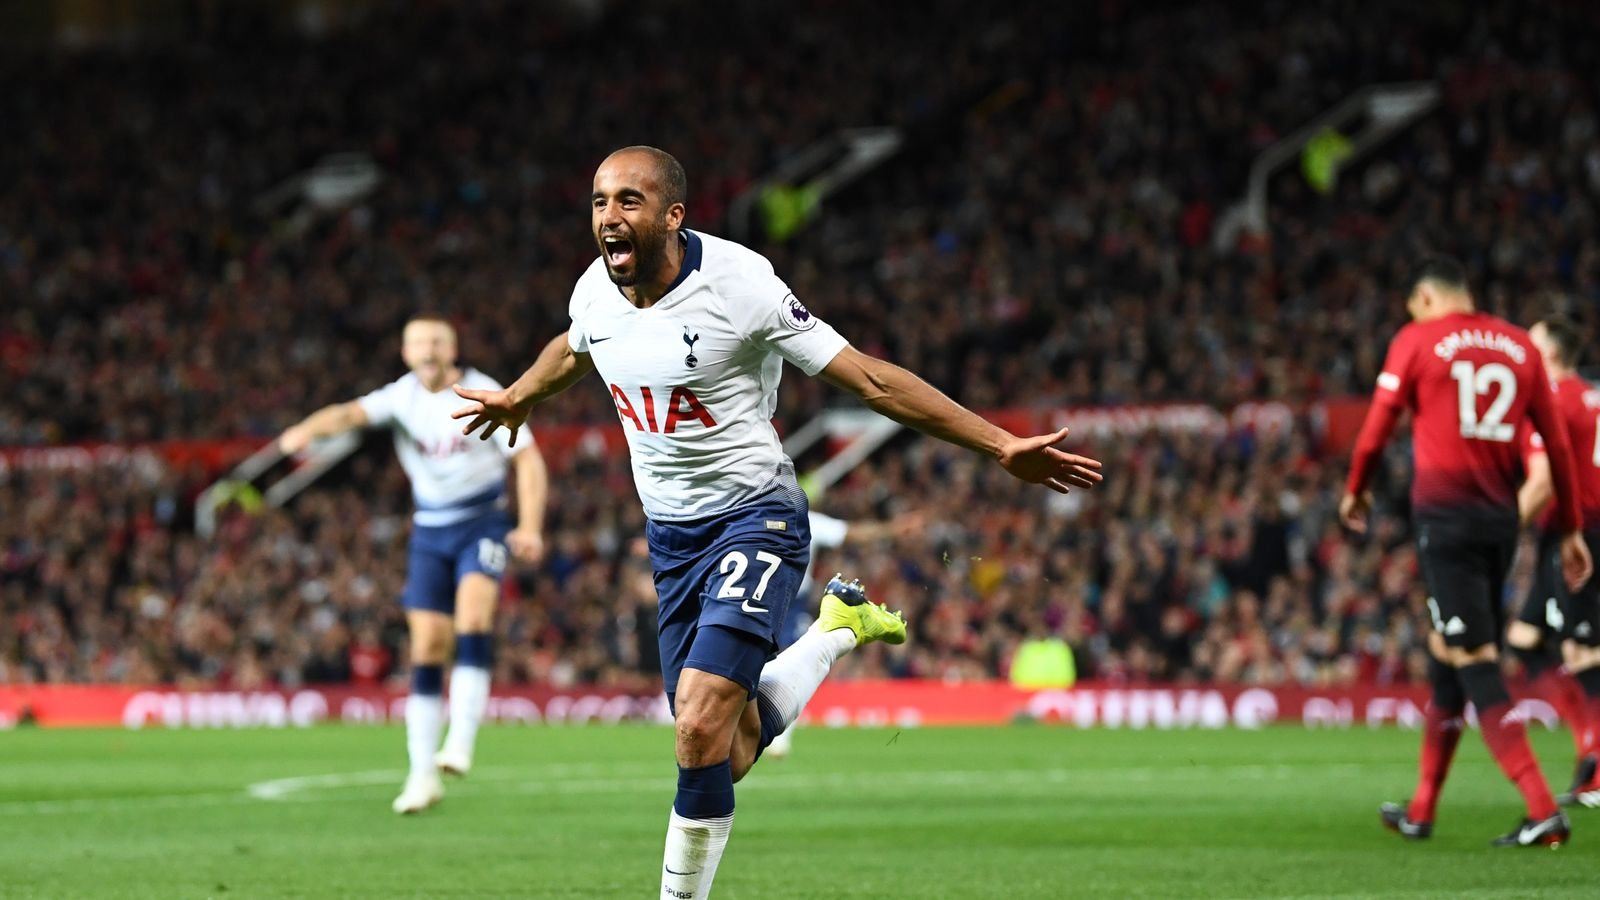 MNF: Lucas Moura Could Take Tottenham To Another Level